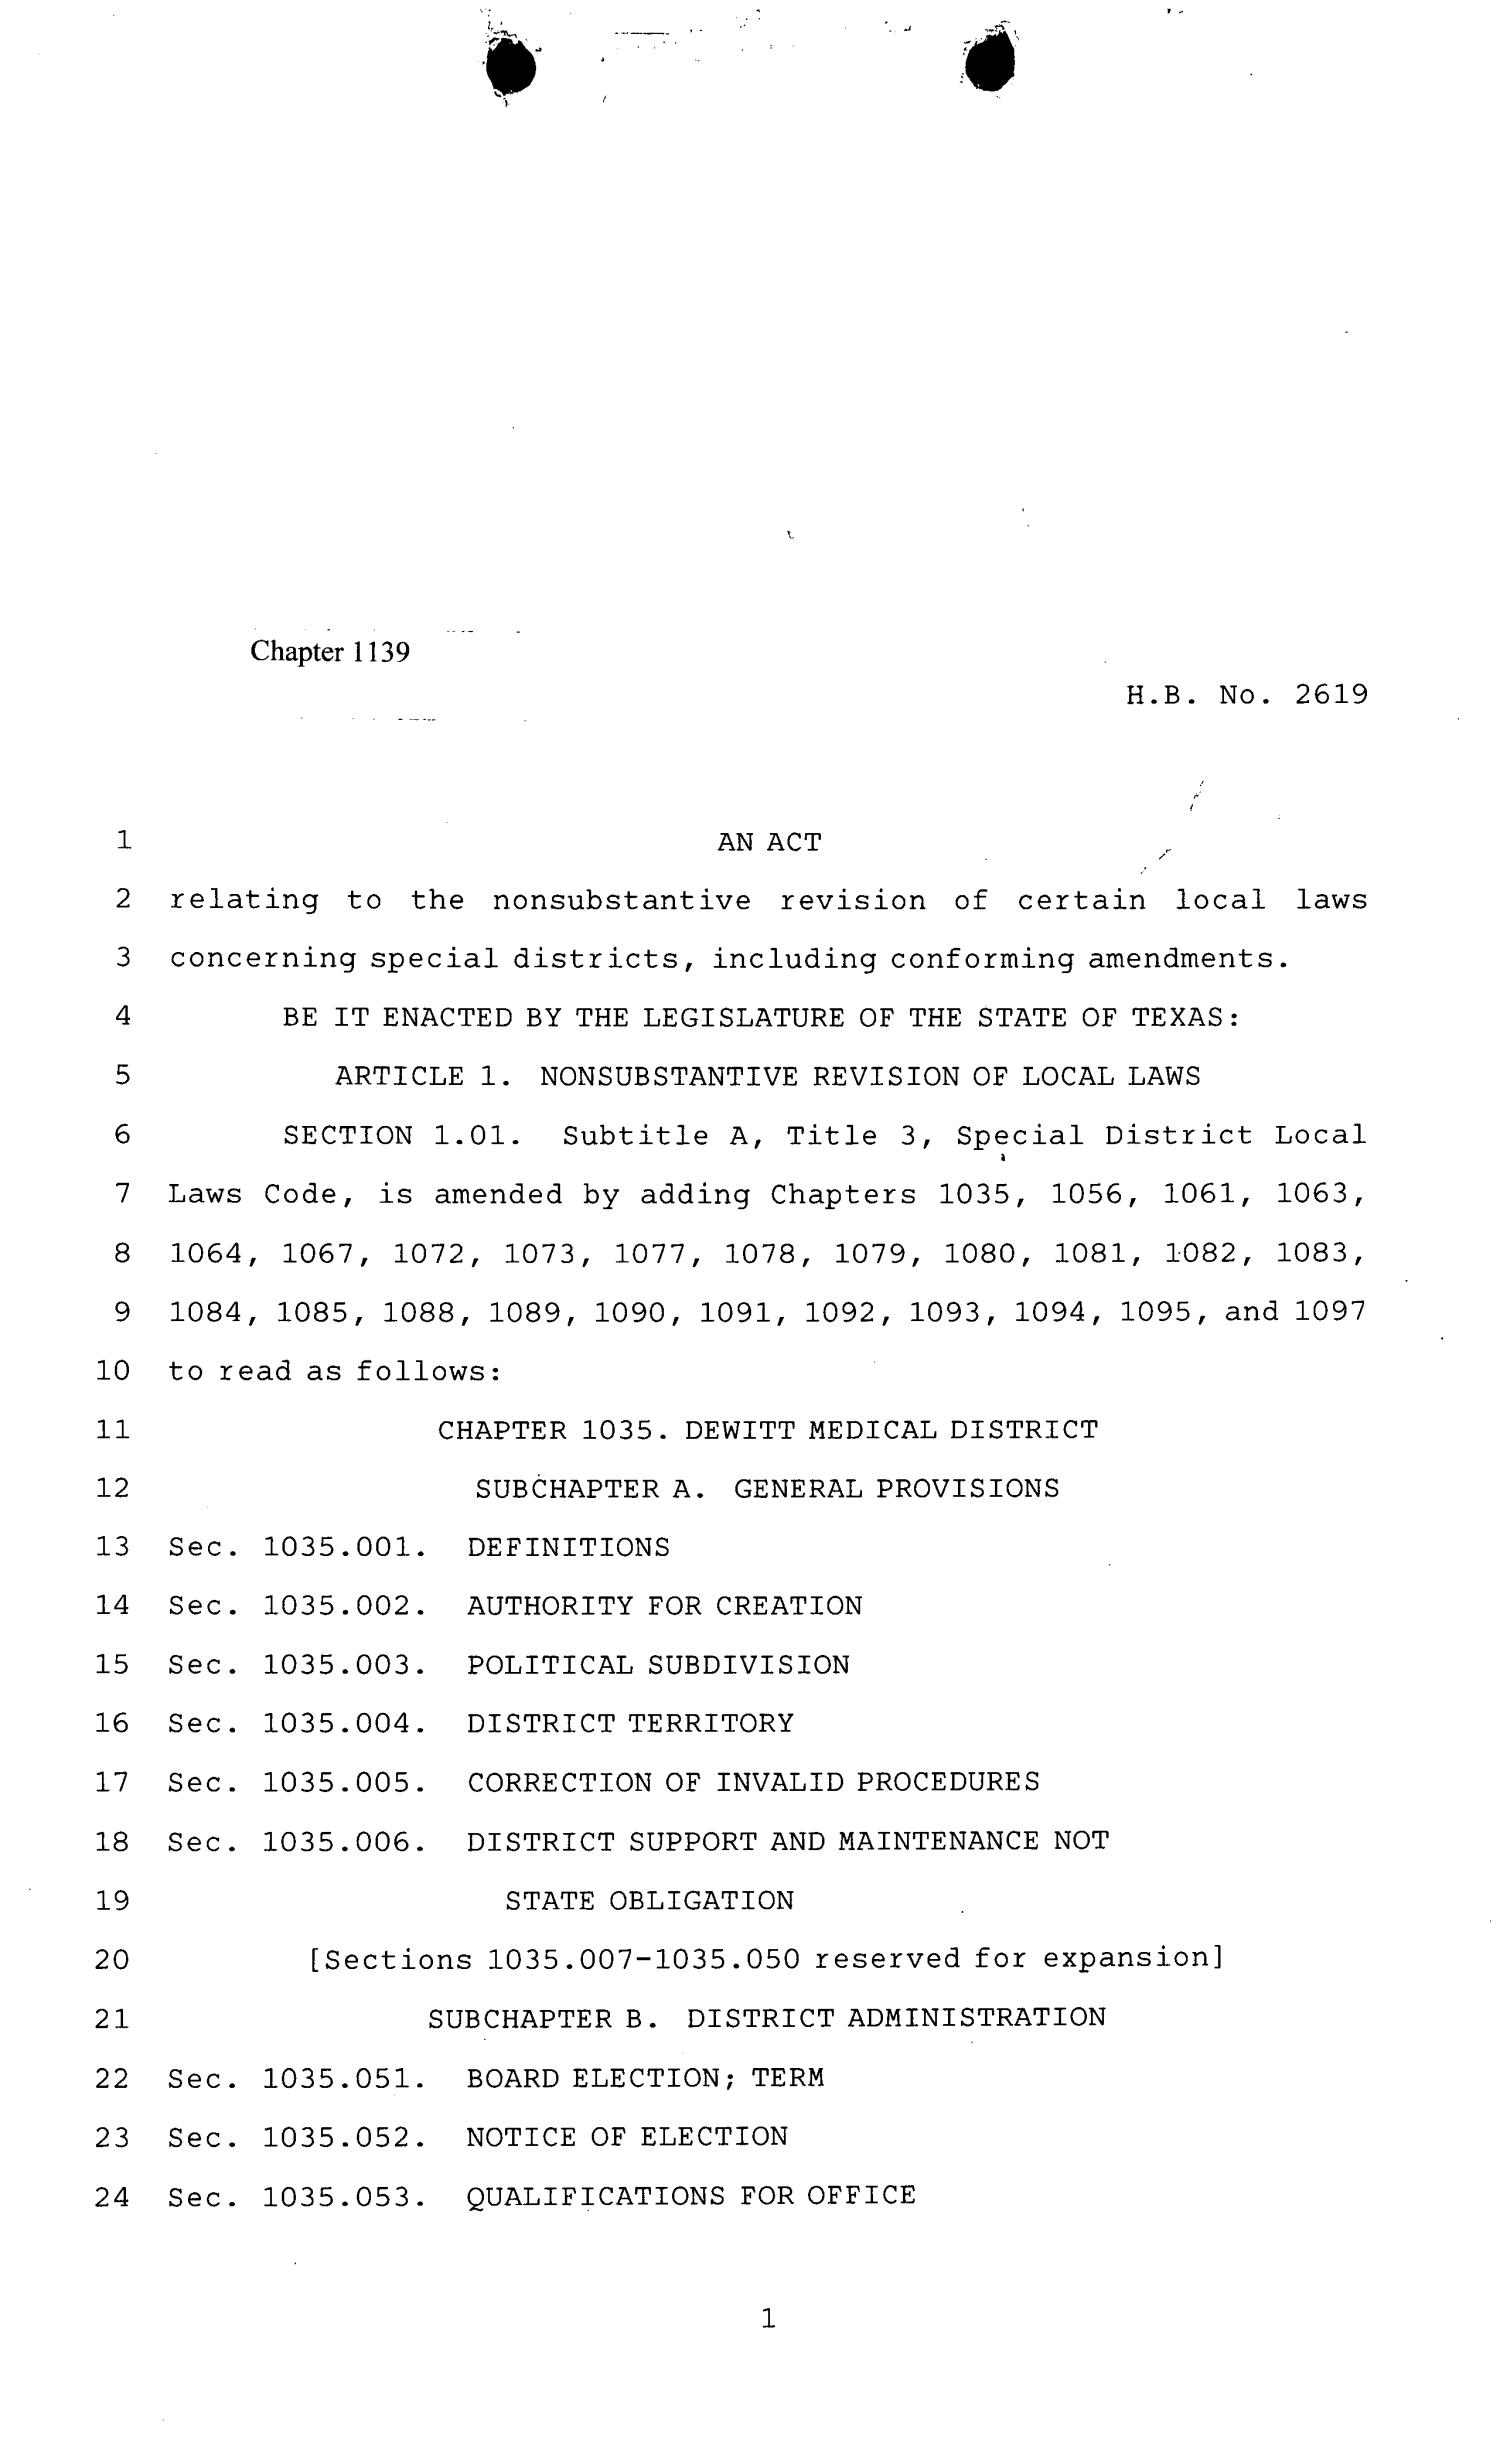 81st Texas Legislature, Regular Session, House Bill 2619, Chapter 1139                                                                                                      [Sequence #]: 1 of 950